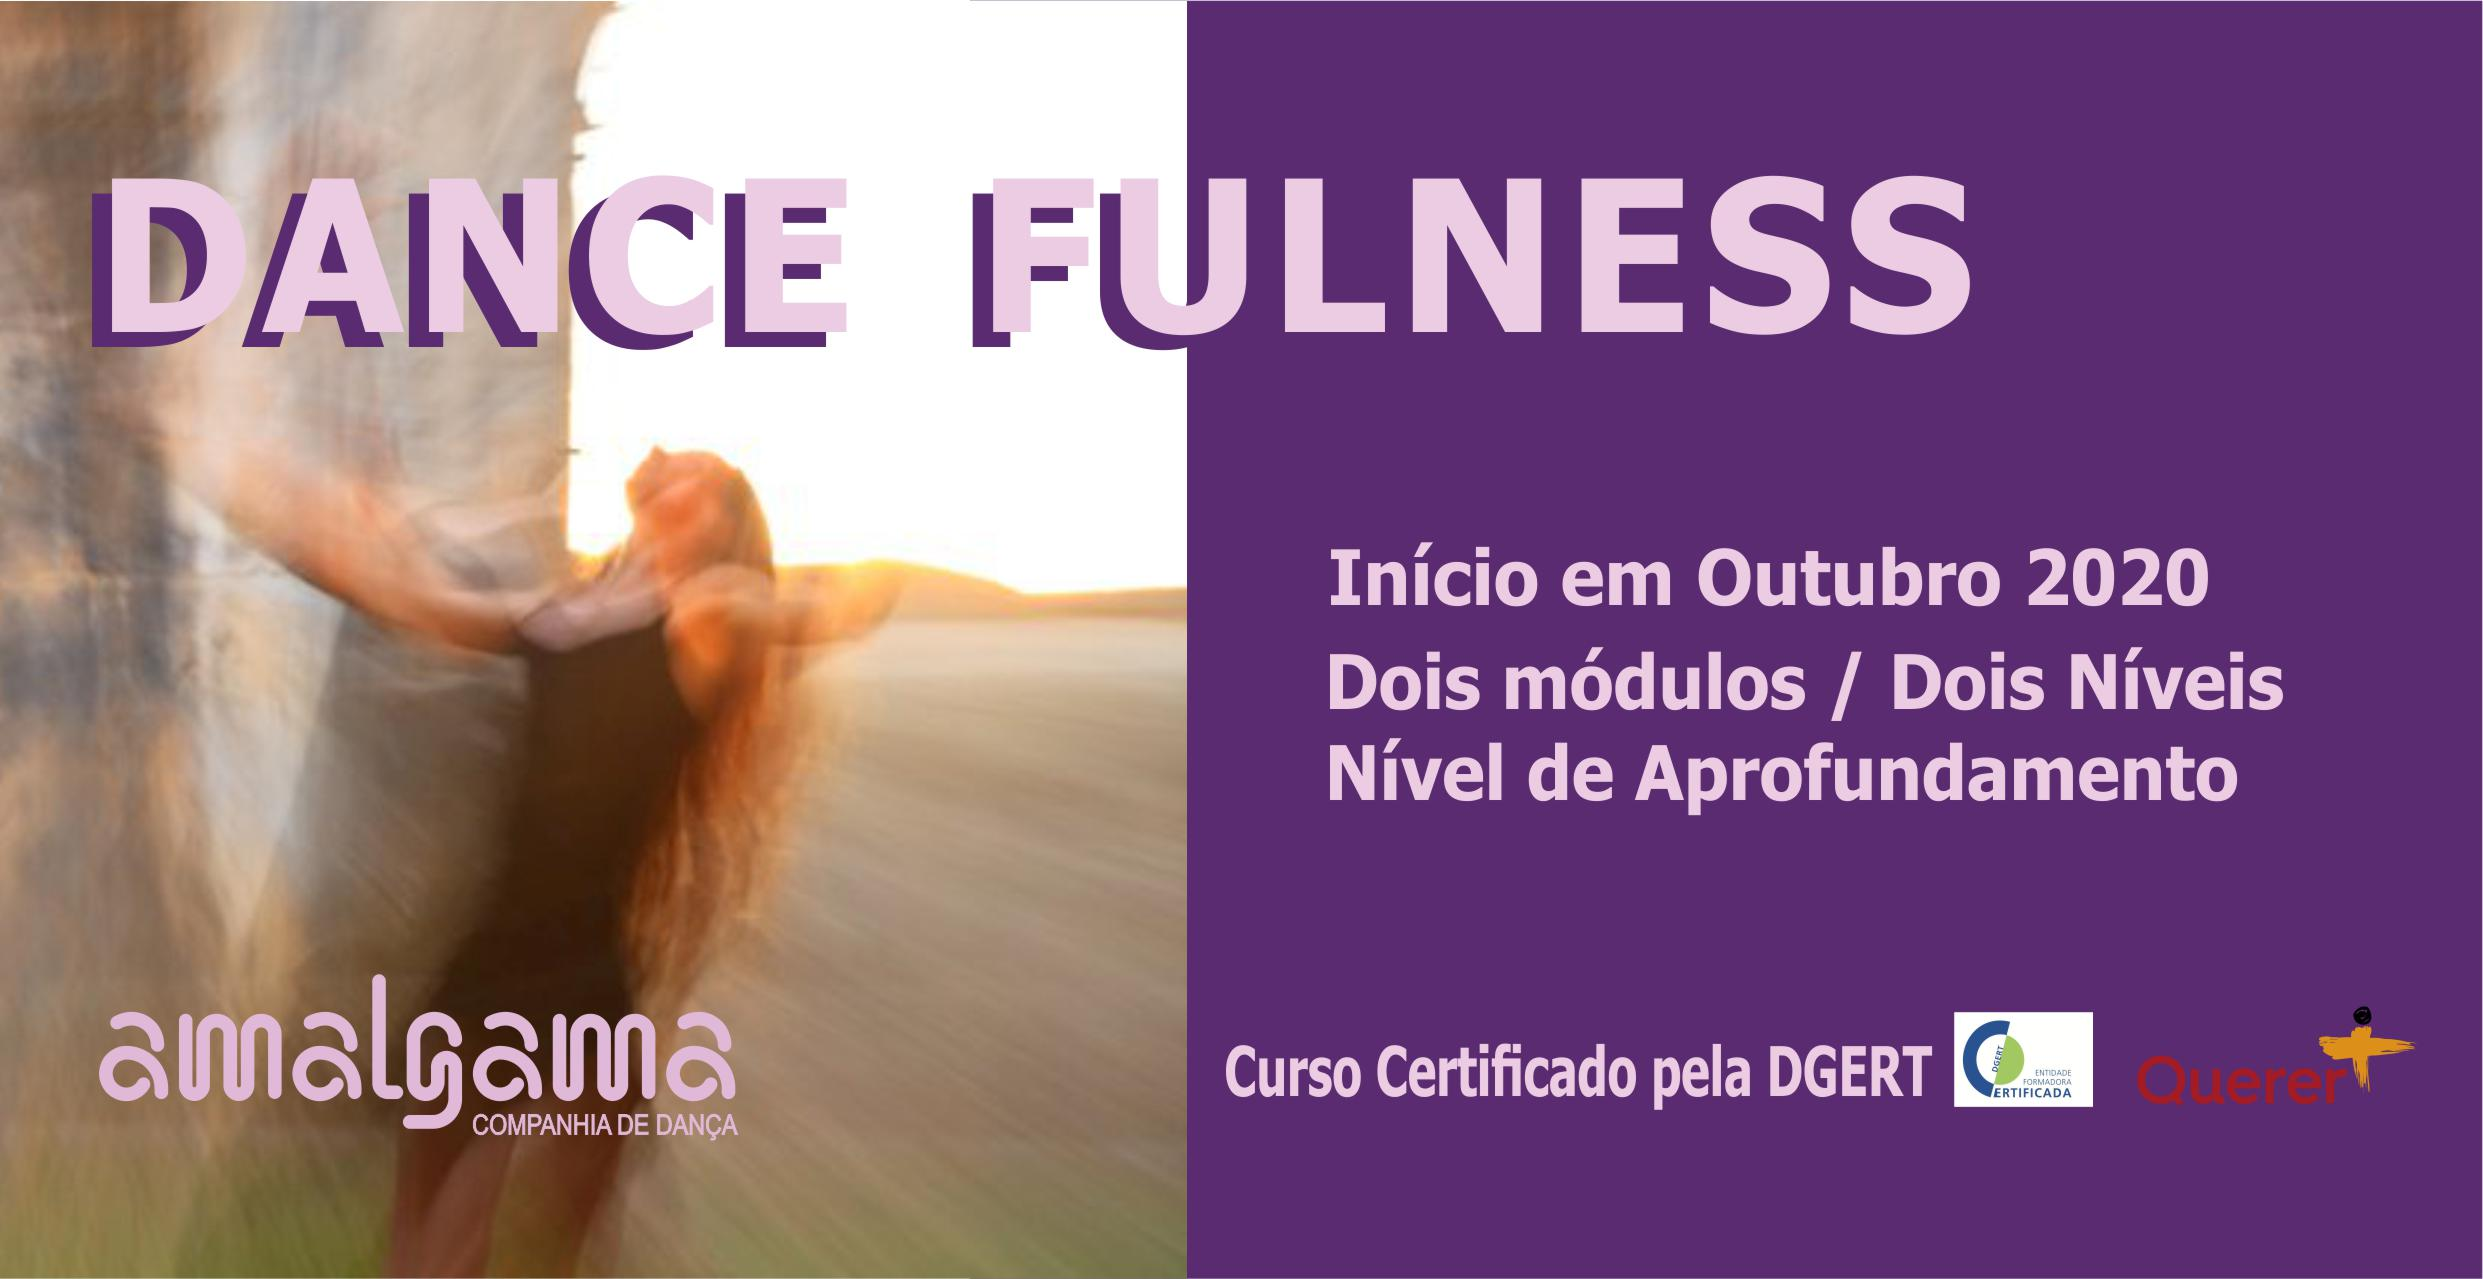 Evento dance fulness